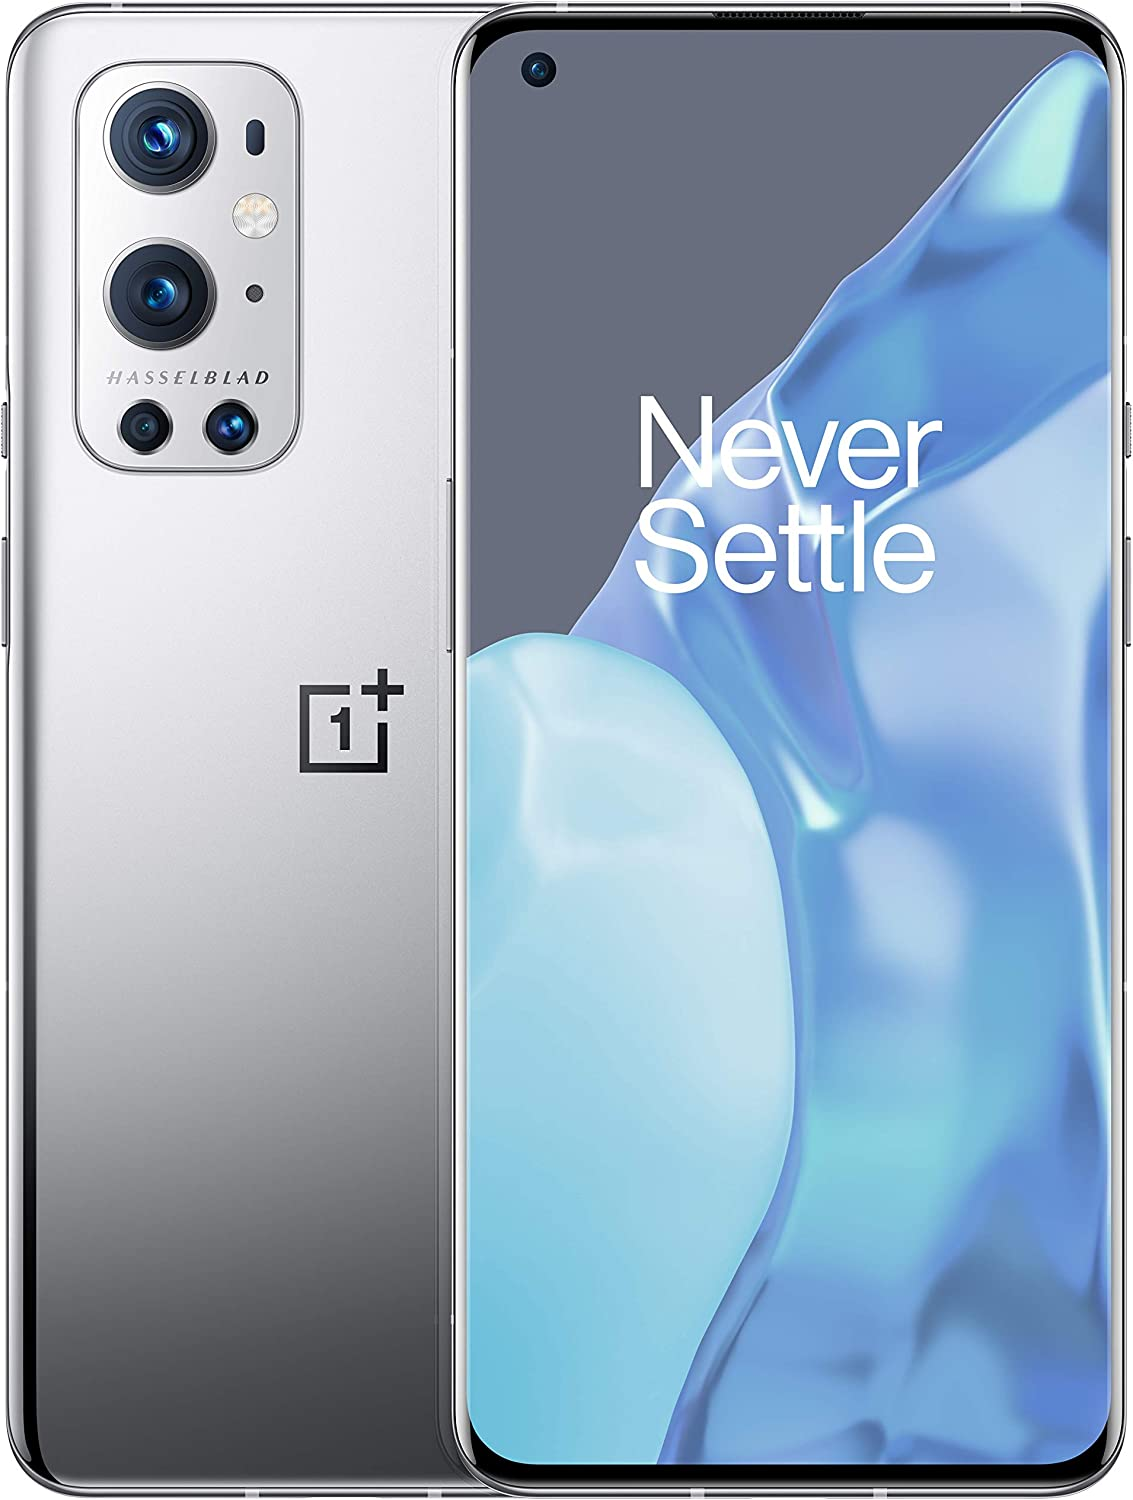 OnePlus 9 Pro Morning Mist, 5G Unlocked Android Smartphone U.S Version,12GB RAM+256GB Storage,120Hz Fluid Display,Hasselblad Quad Camera,65W Ultra Fast Charge,50W Wireless Charge,with Alexa Built-in